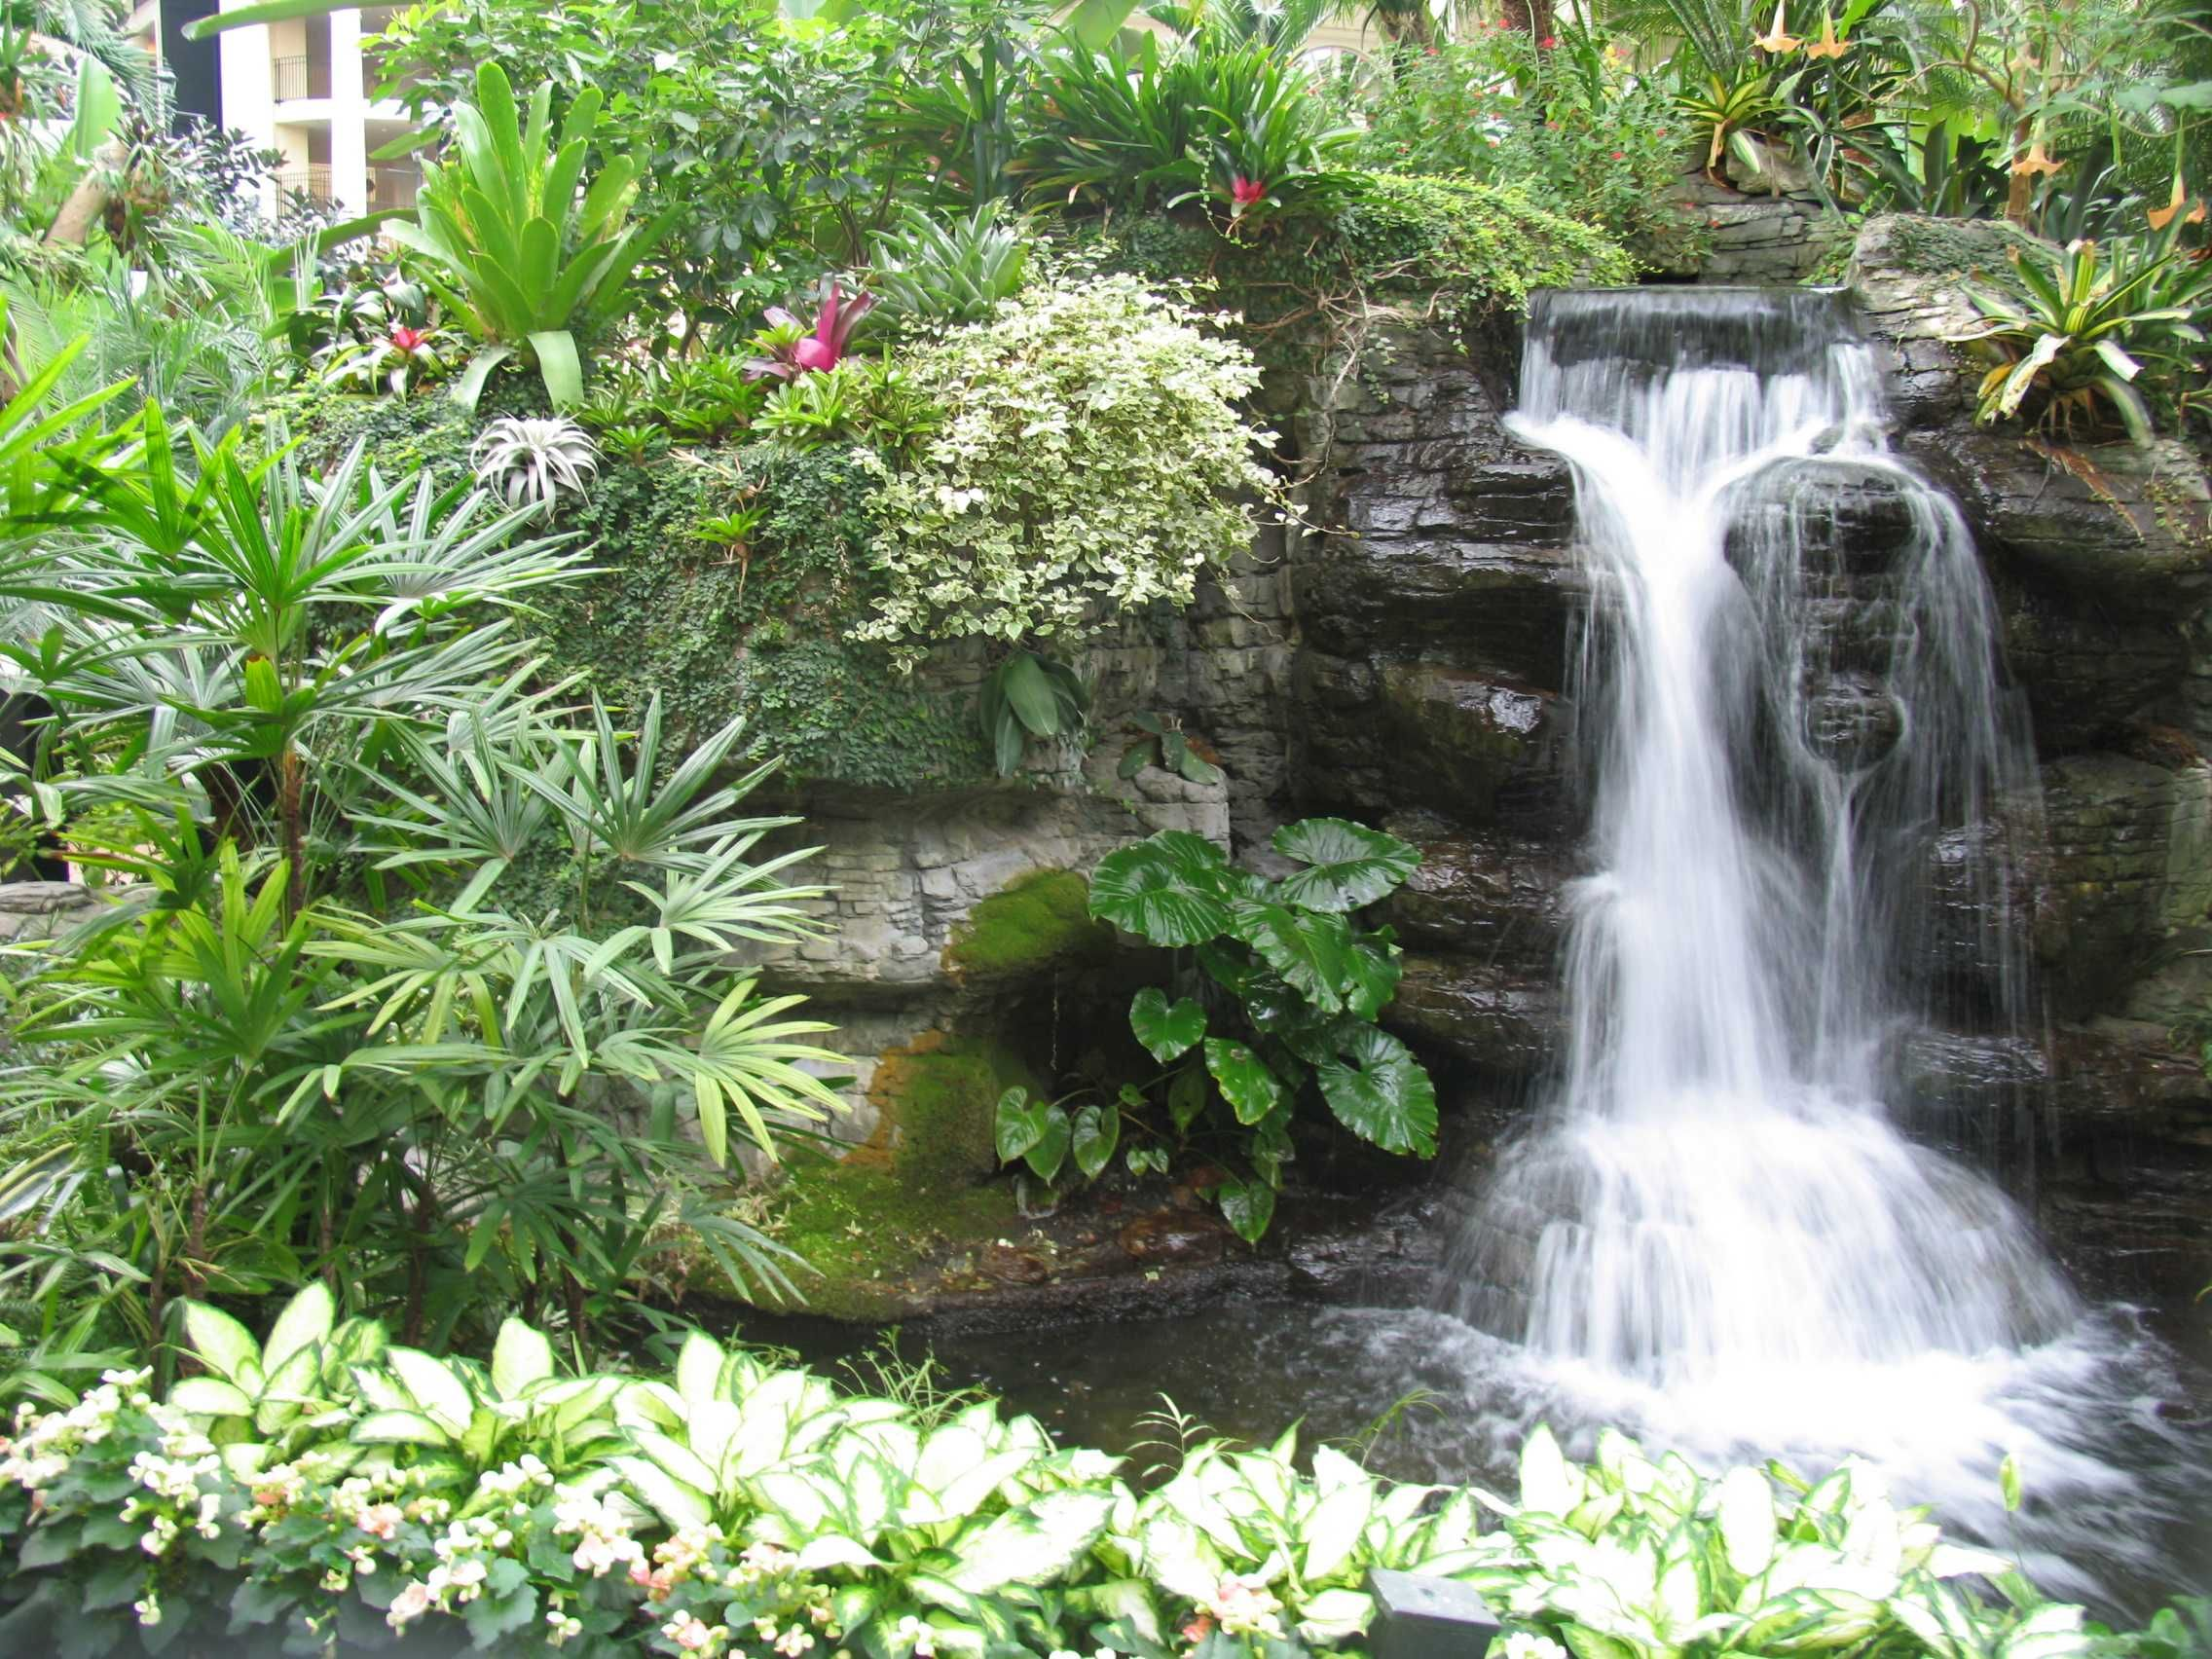 Waterfall Landscape Design Ideas professionally planned hardscape Water Garden Waterfall Design Ideas Make Your Landscape Interesting With The Use Of A Water Feature